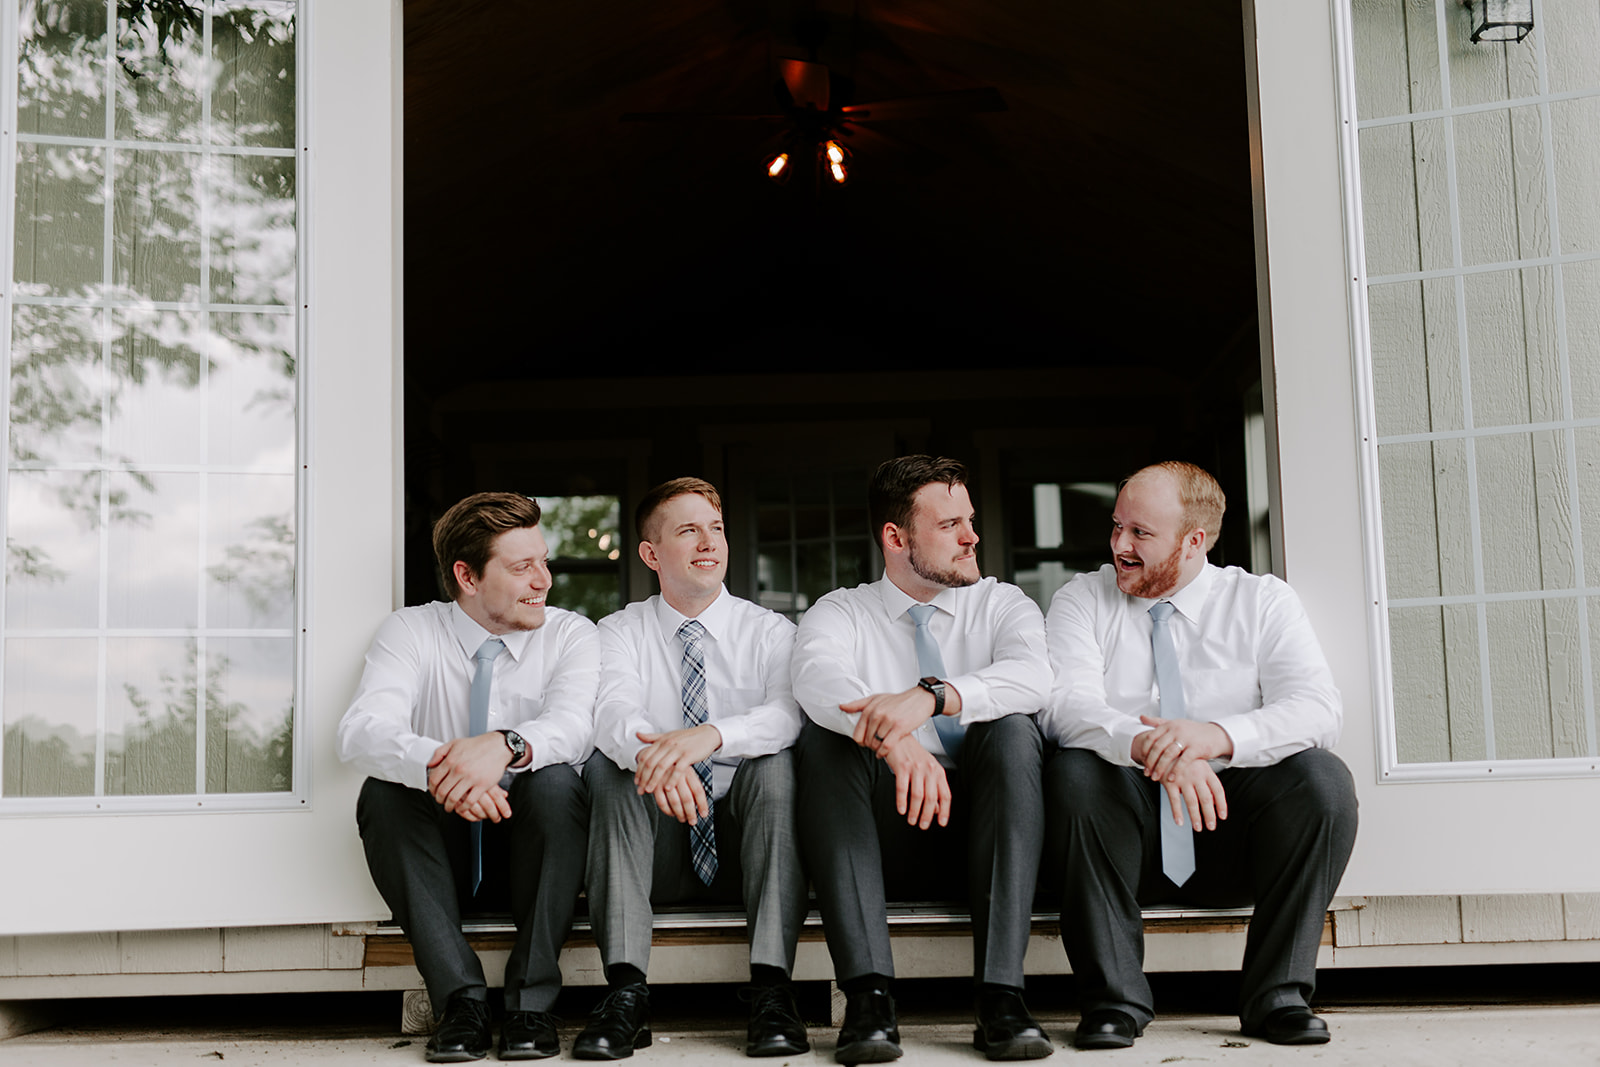 Kendra_and_Mattew_Indiana_Wedding_by_Emily_Wehner-87.jpg